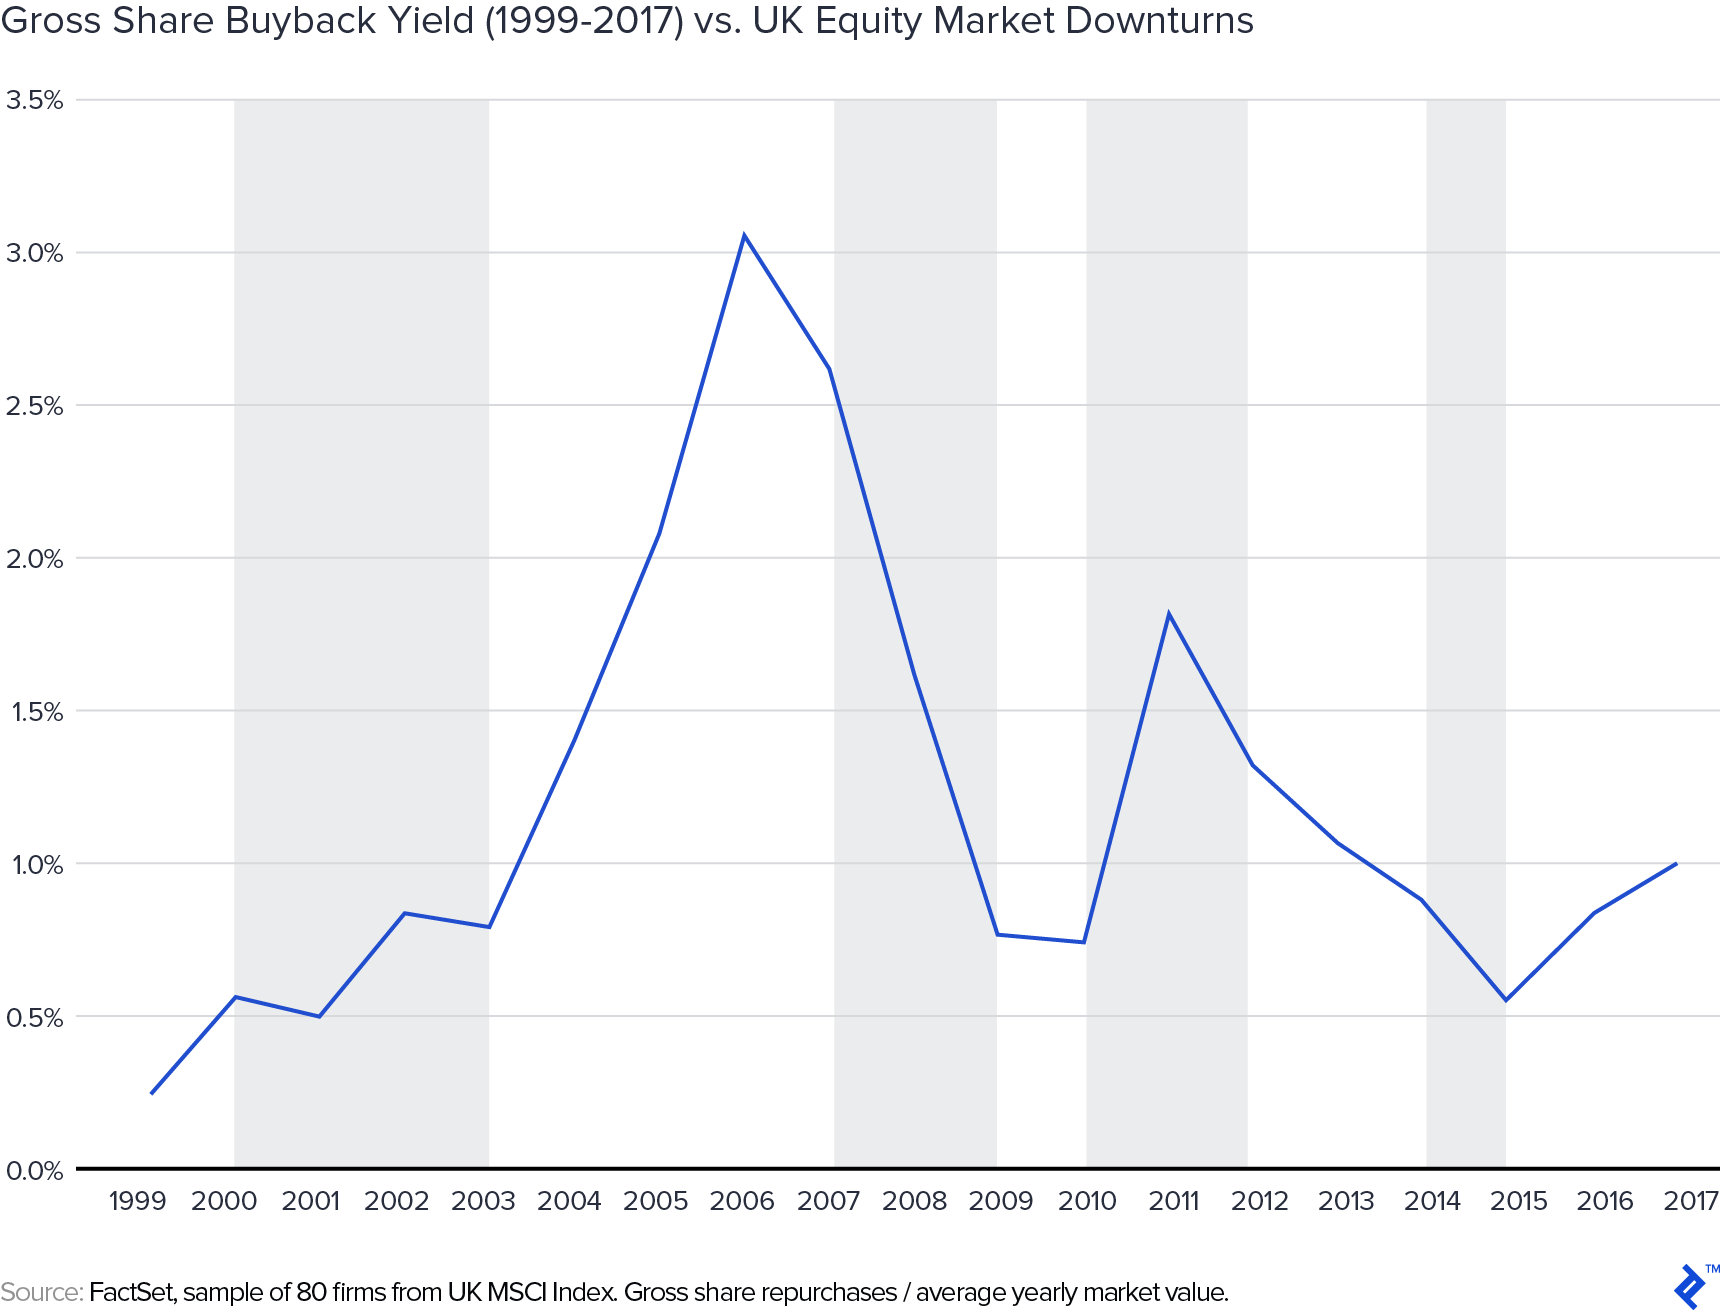 Gross share buyback yield from 1999 to 2017 versus UK equity market downturns